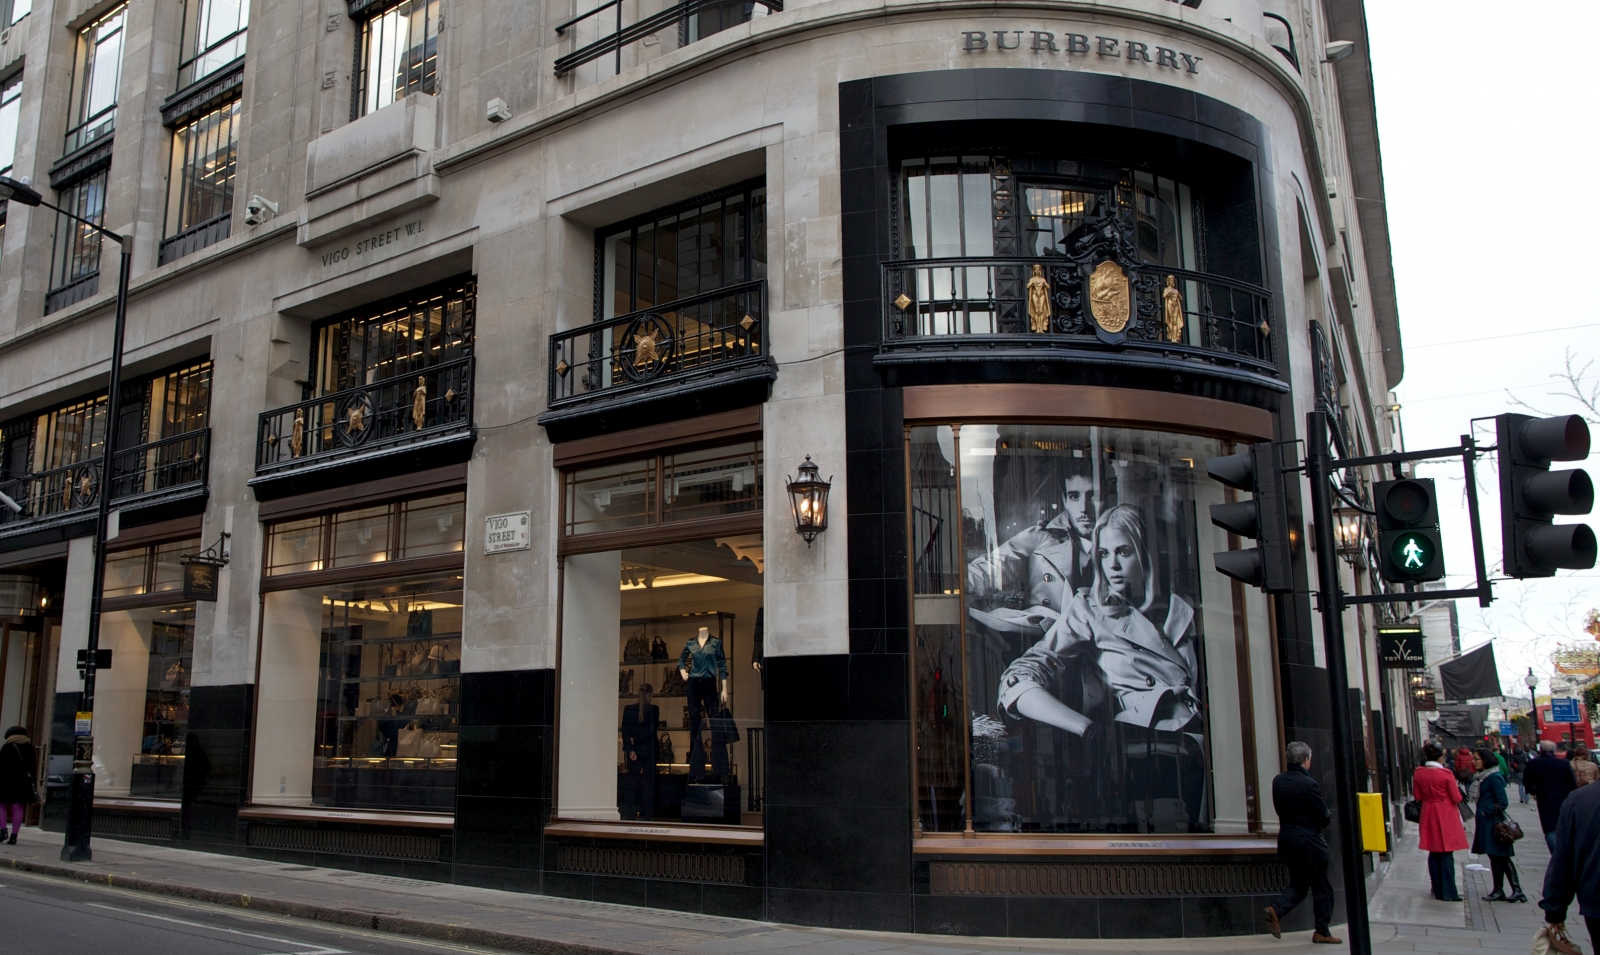 burberry store outlet xihk  burberry outlet uk